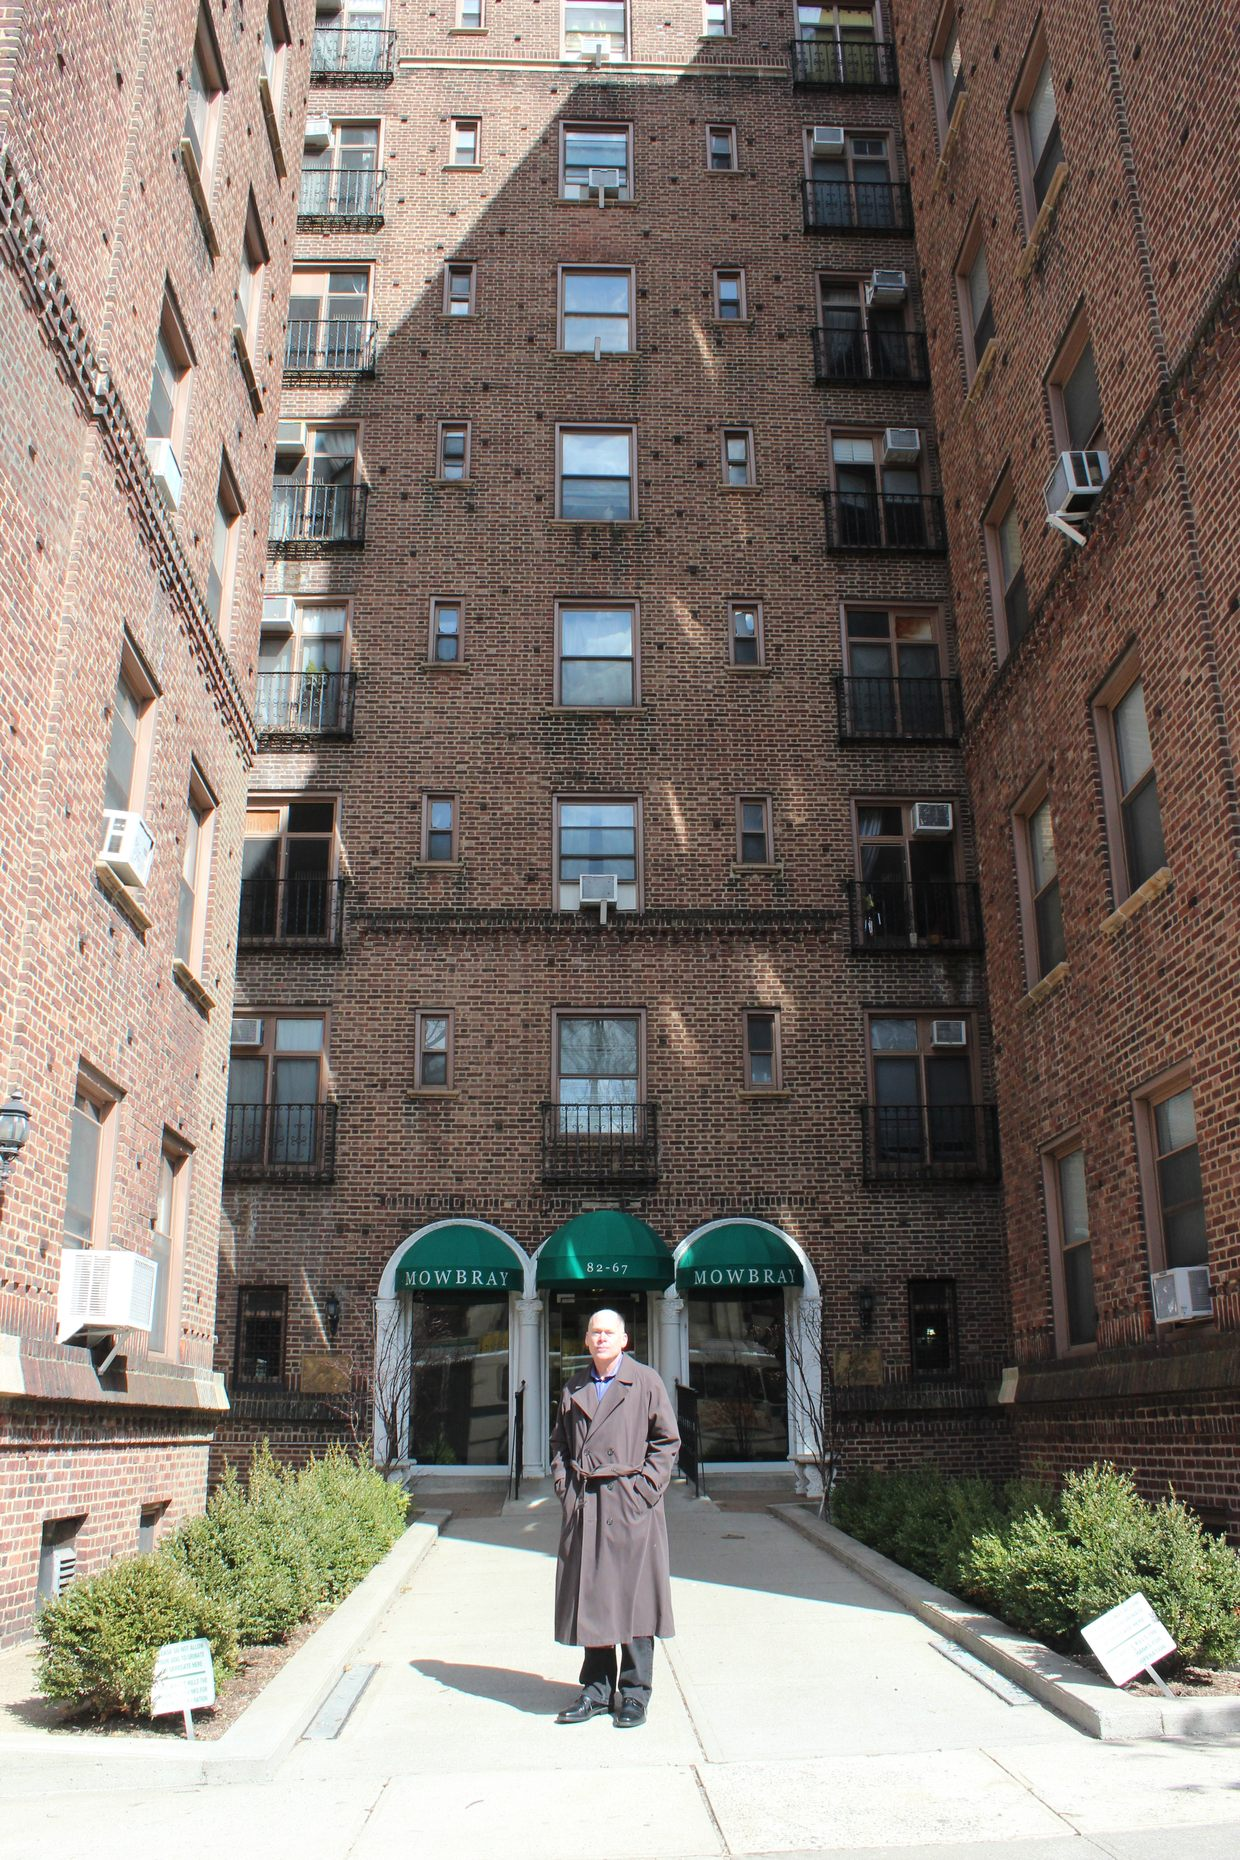 Author Kevin Cook stands outside the Mowbray Apartment building, across the street from where Kitty Genovese was attacked.